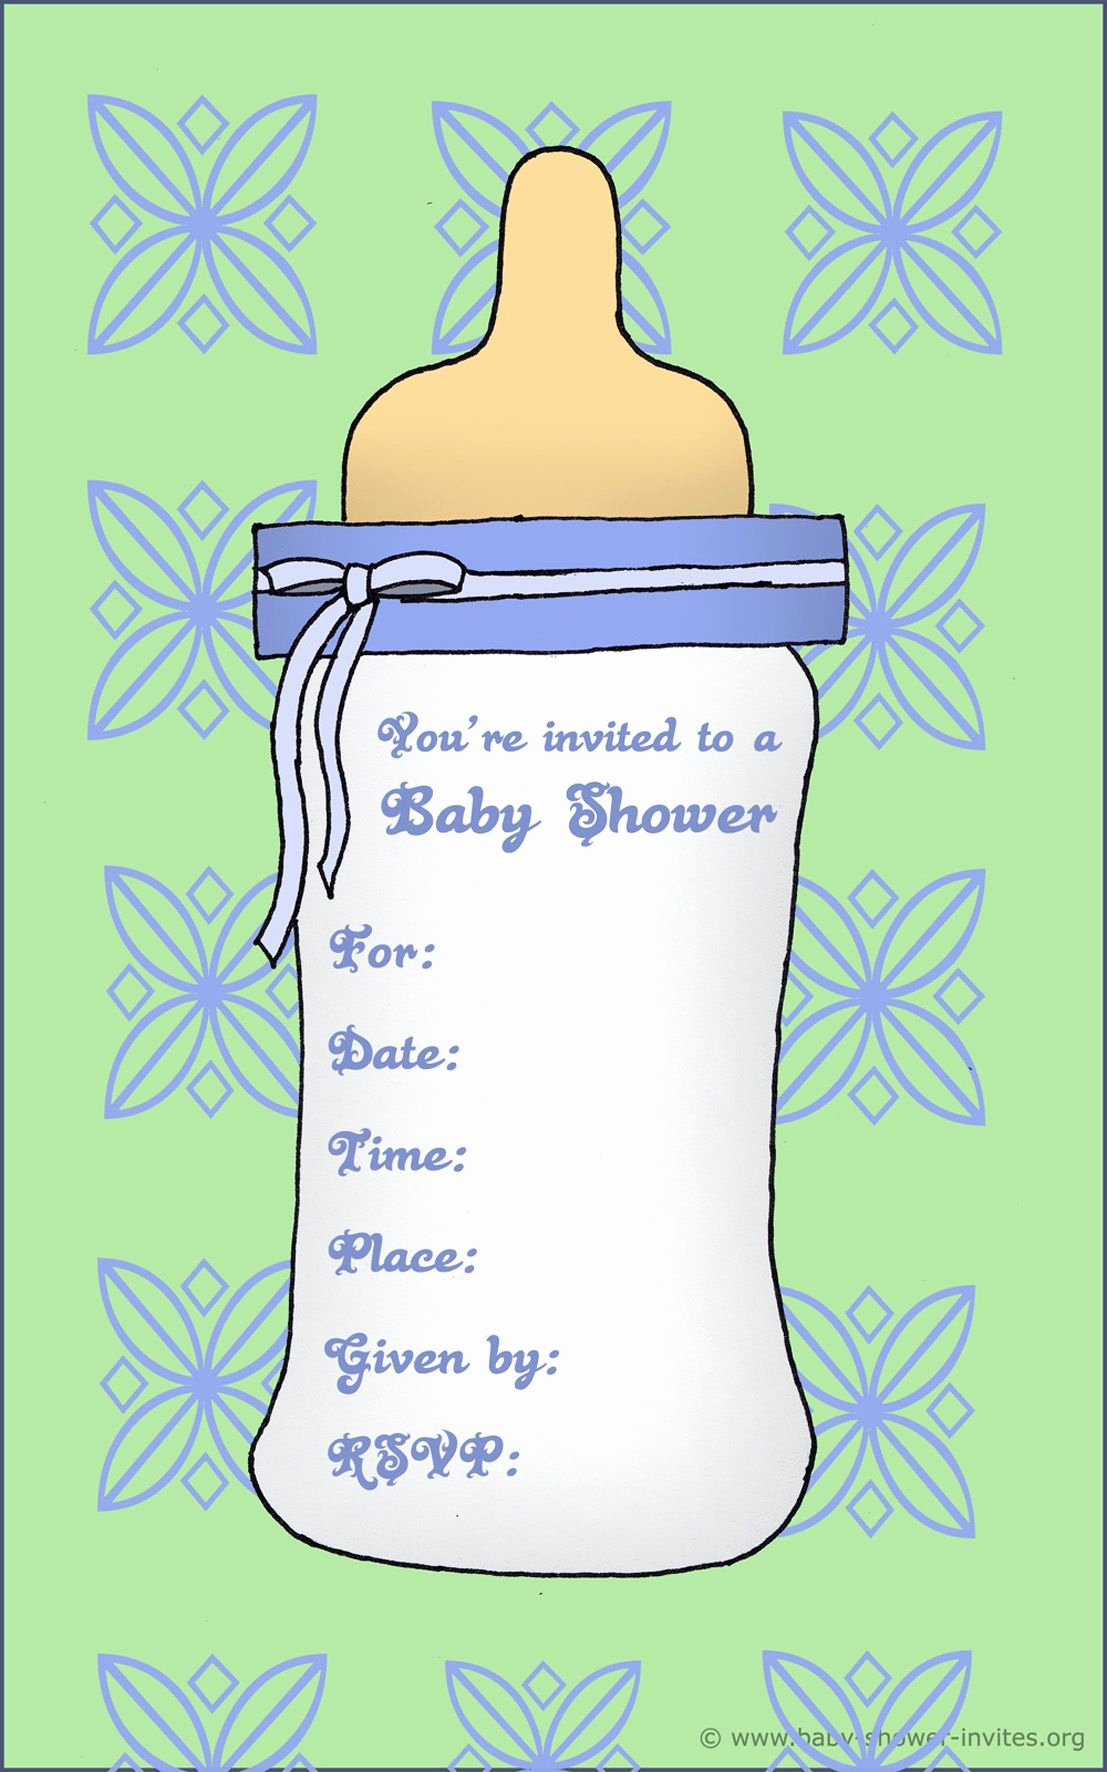 Baby Shower Template Word Inspirational Free Baby Invitation Template Free Baby Shower